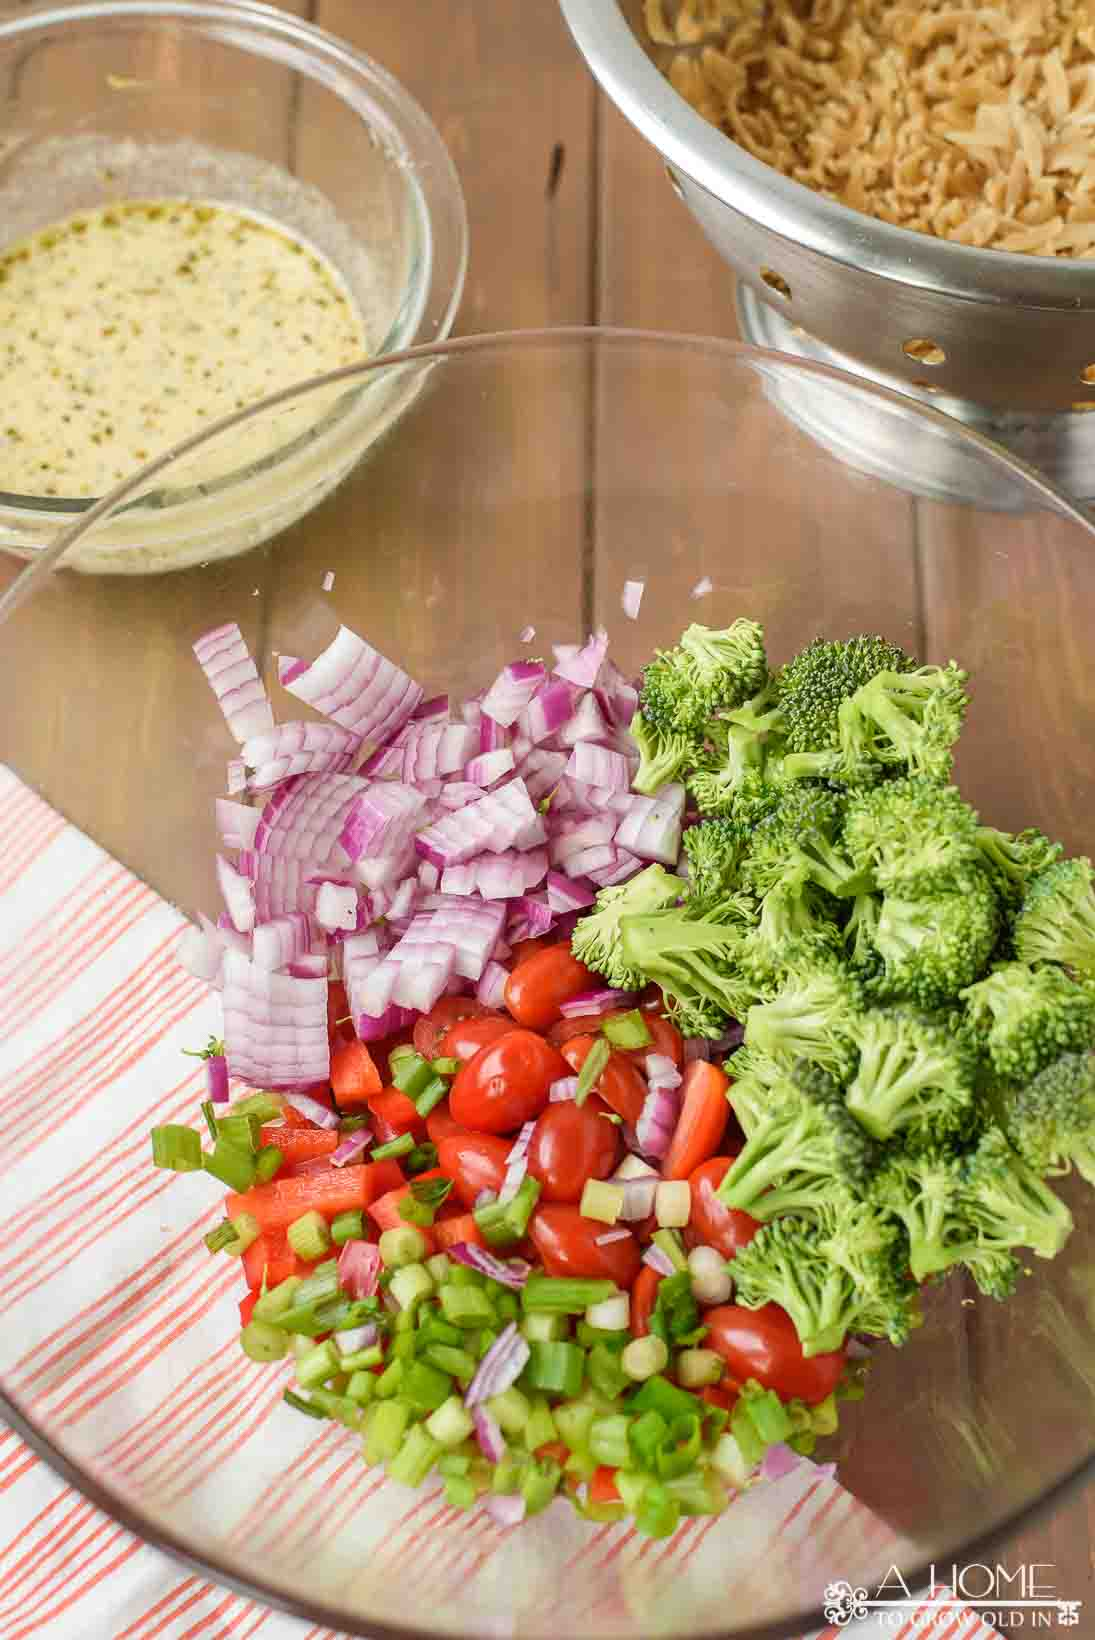 cut up vegetables for the pasta salad